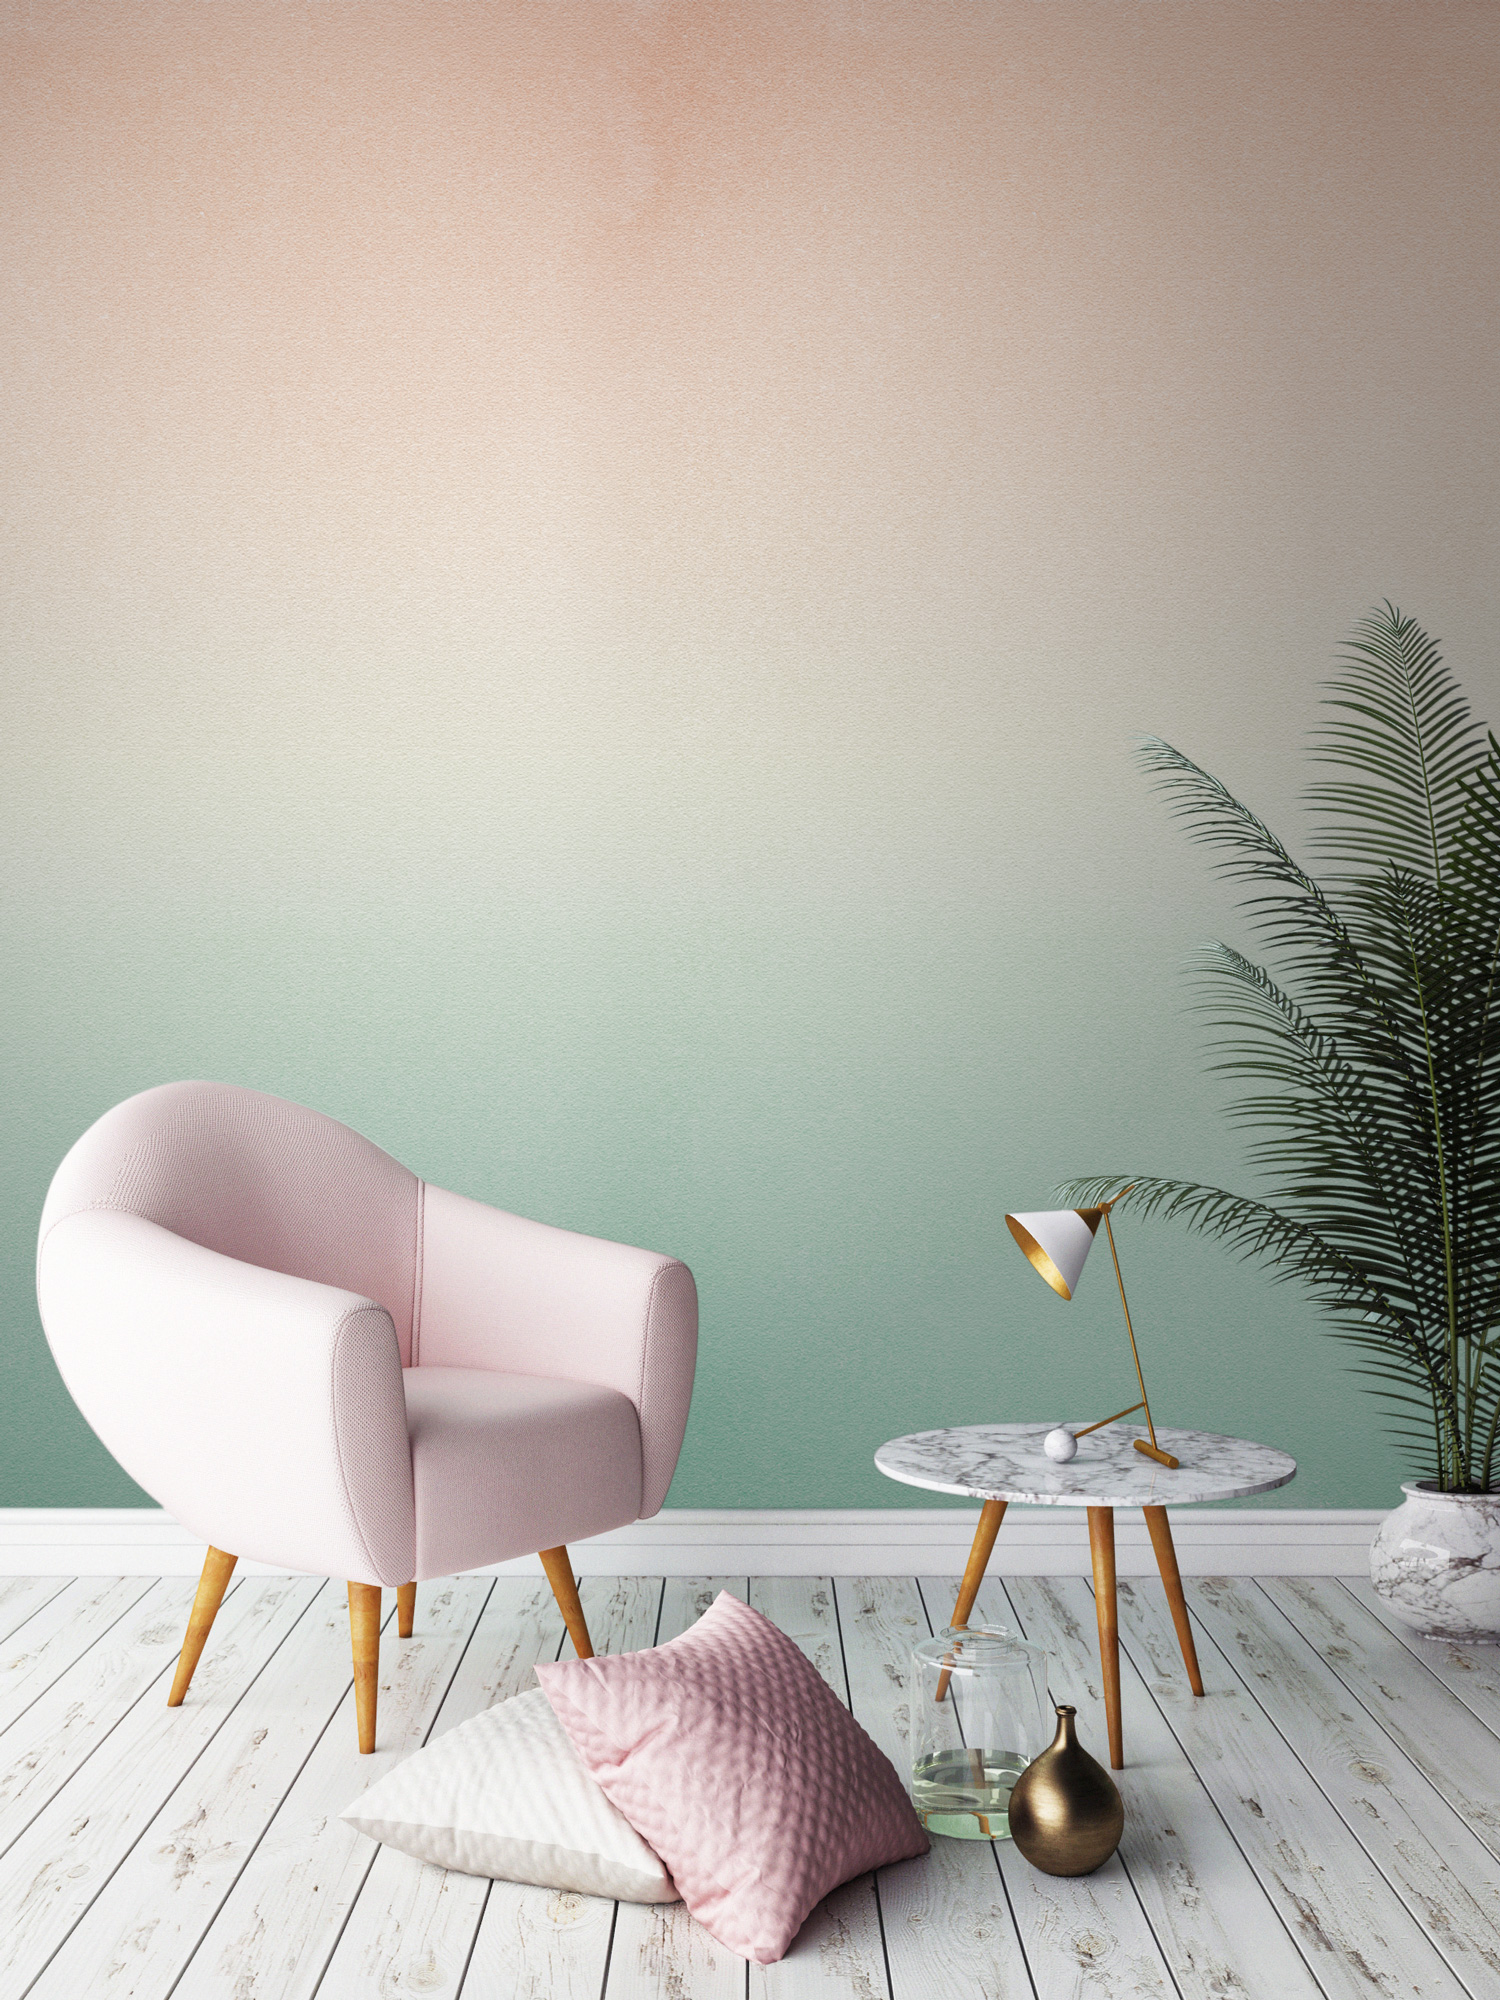 Home Decor Trends for the Summer That Are Calling for You home decor trends Home Decor Trends for the Summer That Are Calling for You Home Decor Trends for the Summer That Are Calling for You 1